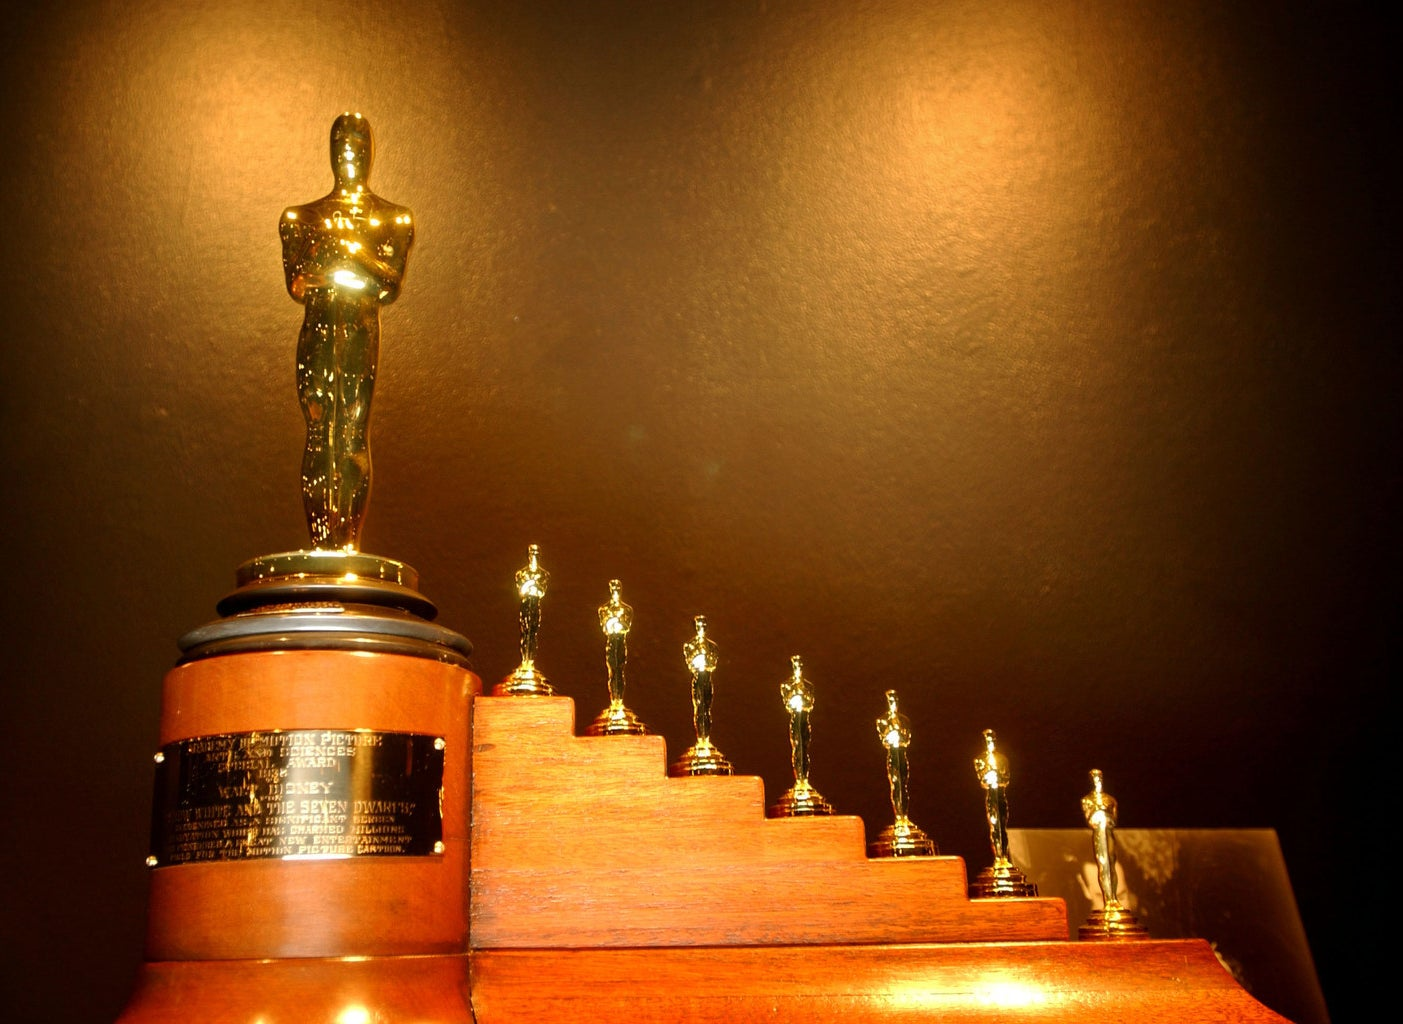 Disney's Oscar for Snow White and the Seven Dwarfs came with seven dwarf-sized Oscar statues.